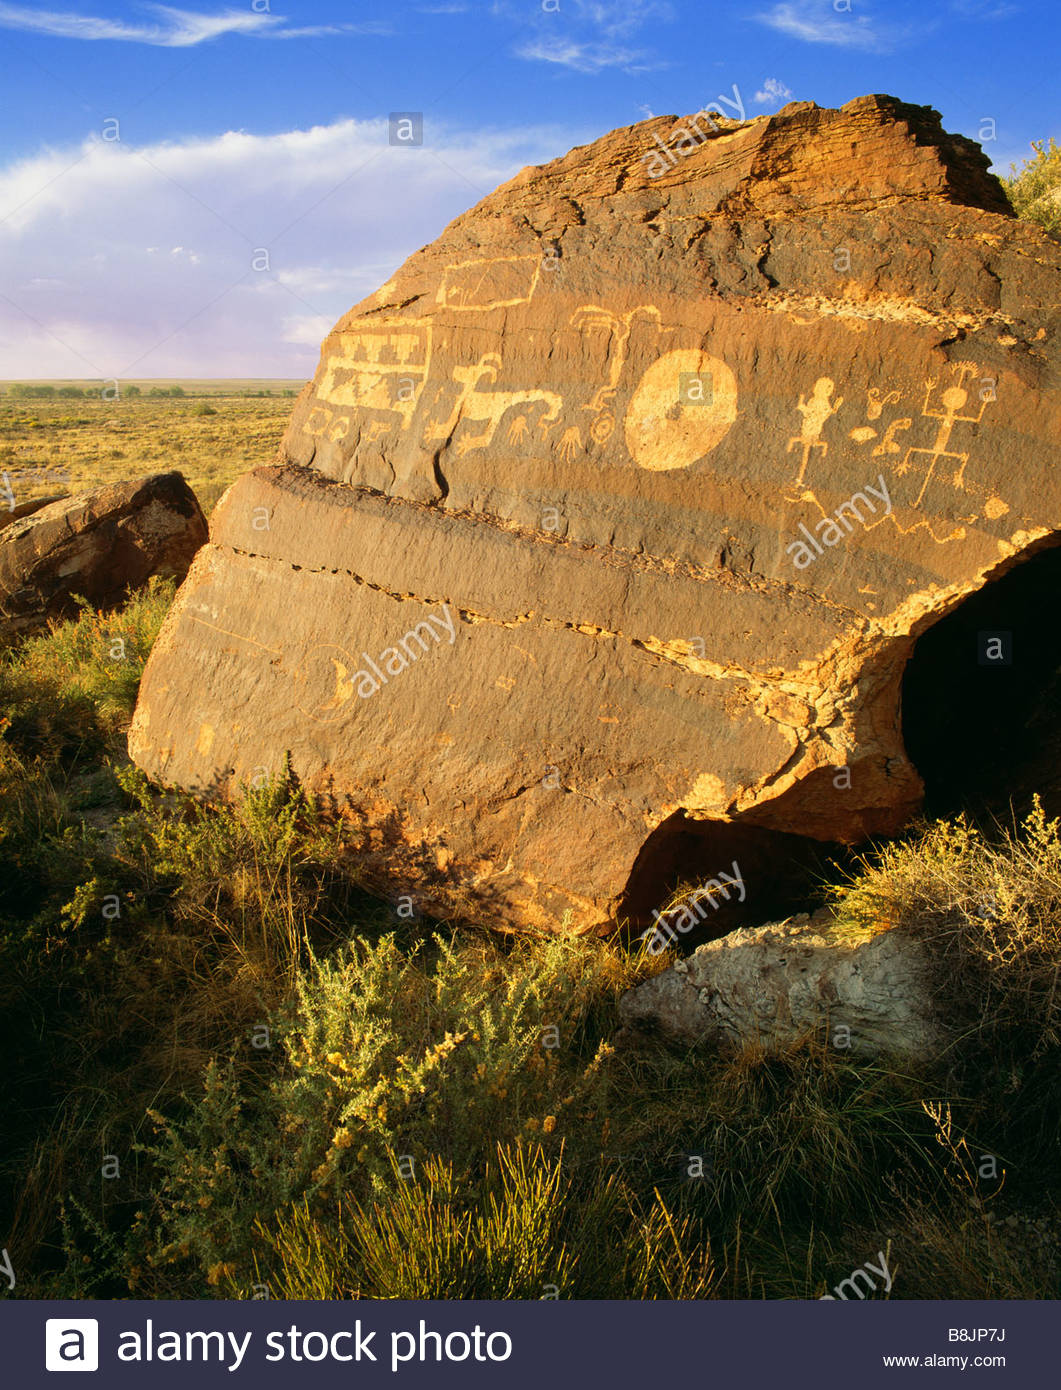 Anasazi culture petroglyphs on boulder with desert varnish Petrified Forest National Park Arizona - Stock Image